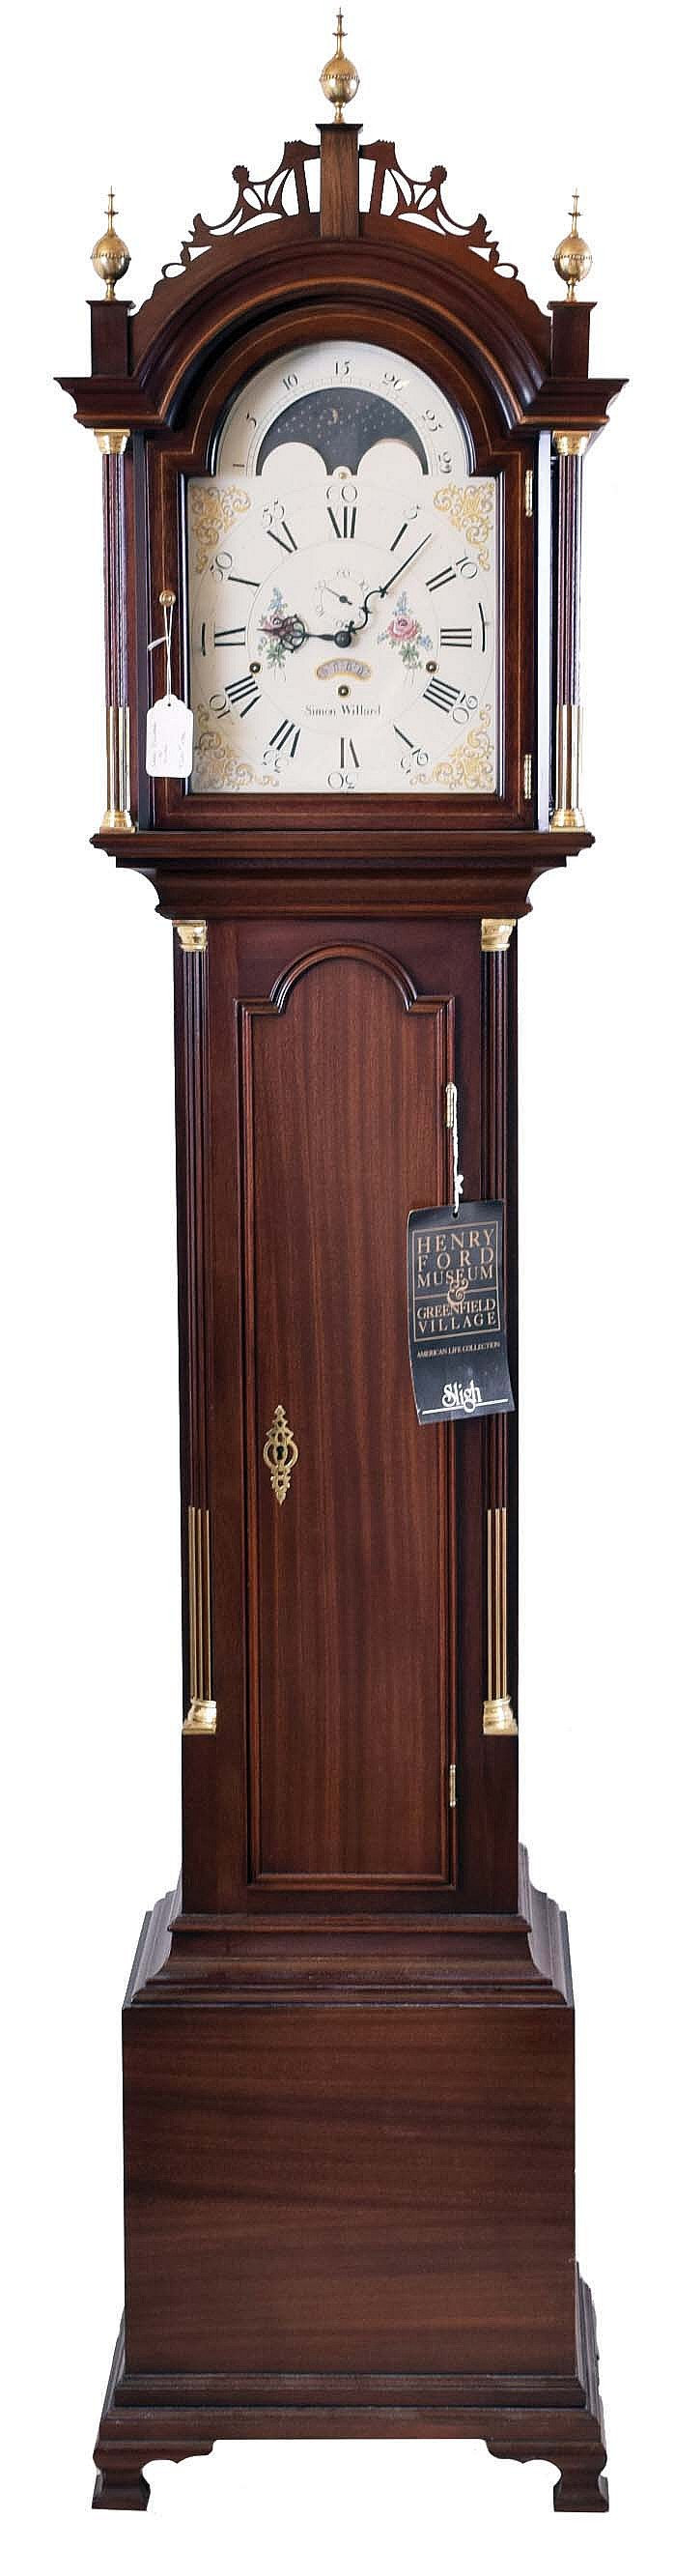 The Henry Ford Museum, Dearborn, Michigan reproduction Simon Willard, Boston, Mass., tall case clock, 8 day, time, strike and triple chime, weight driven movement in a mahogany Roxbury style case with three brass finials, fretwork top, fluted full